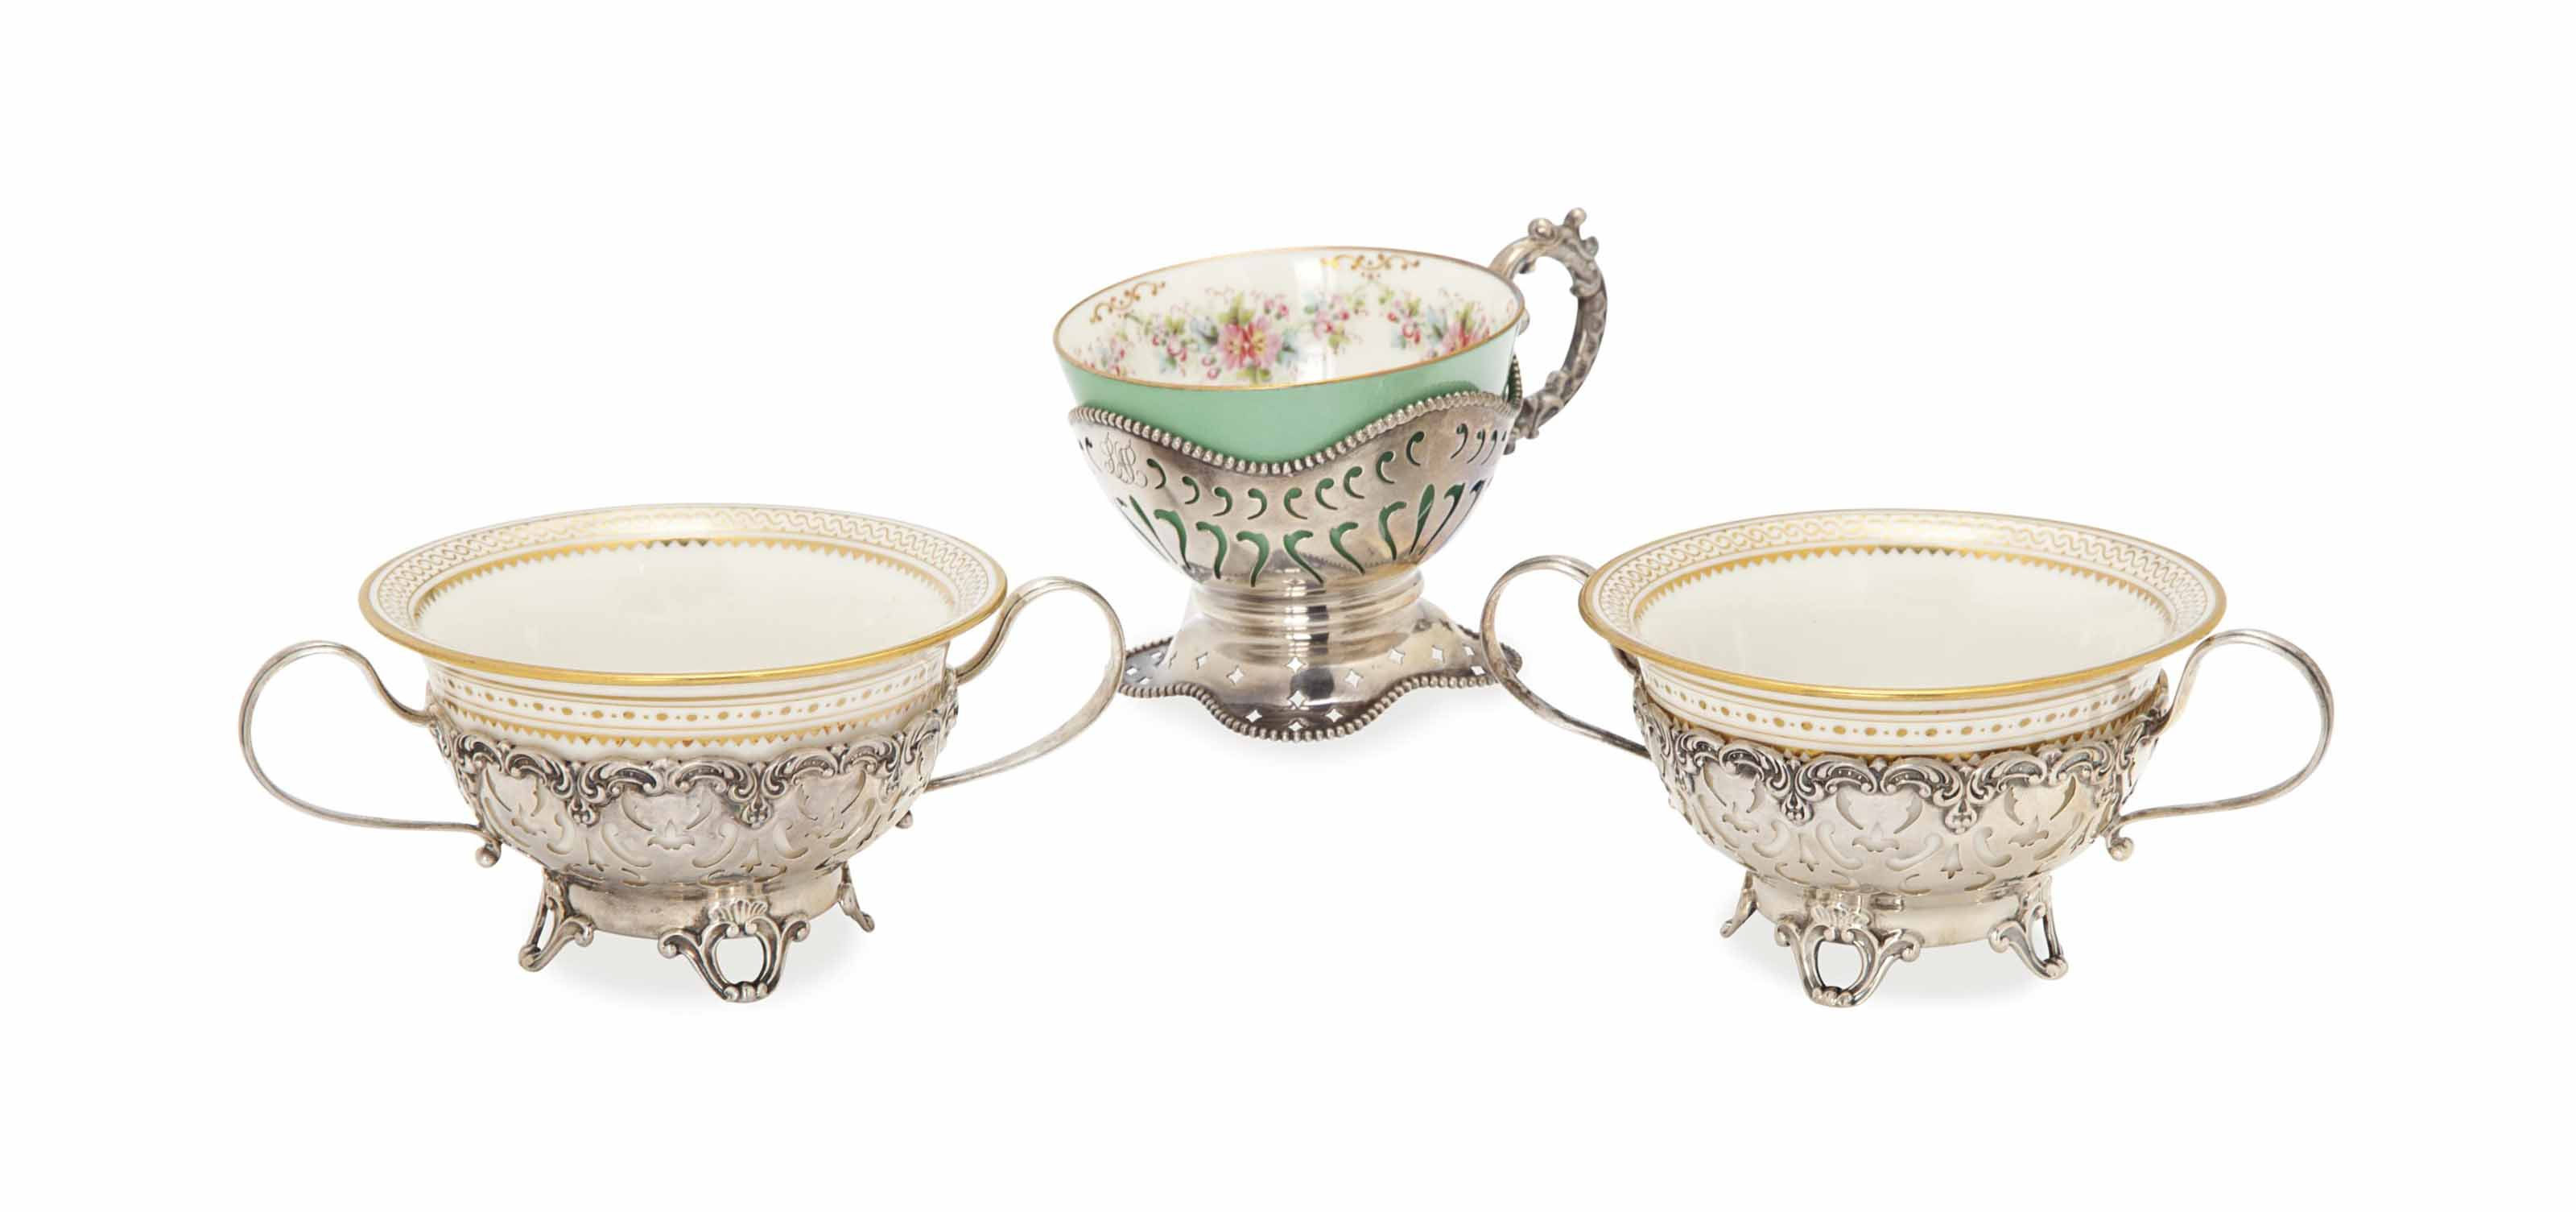 TWO SETS OF AMERICAN SILVER BREAKFAST CUPS WITH ASSOCIATED PORCELAIN LINERS,